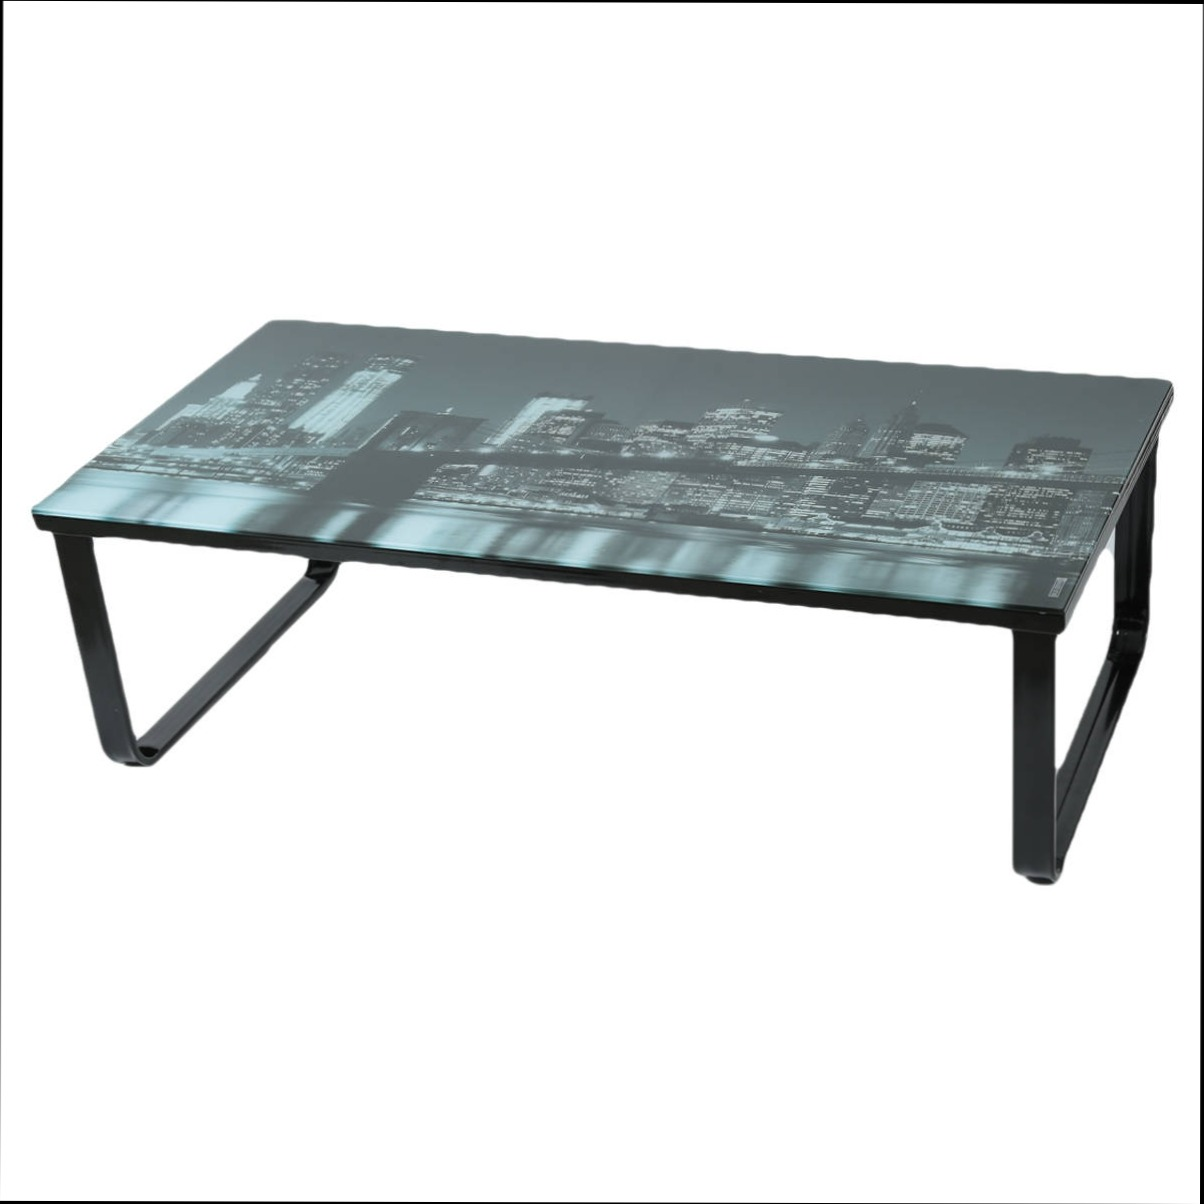 Tabouret Tati Table Basse En Verre Tati Mobilier Design Décoration D